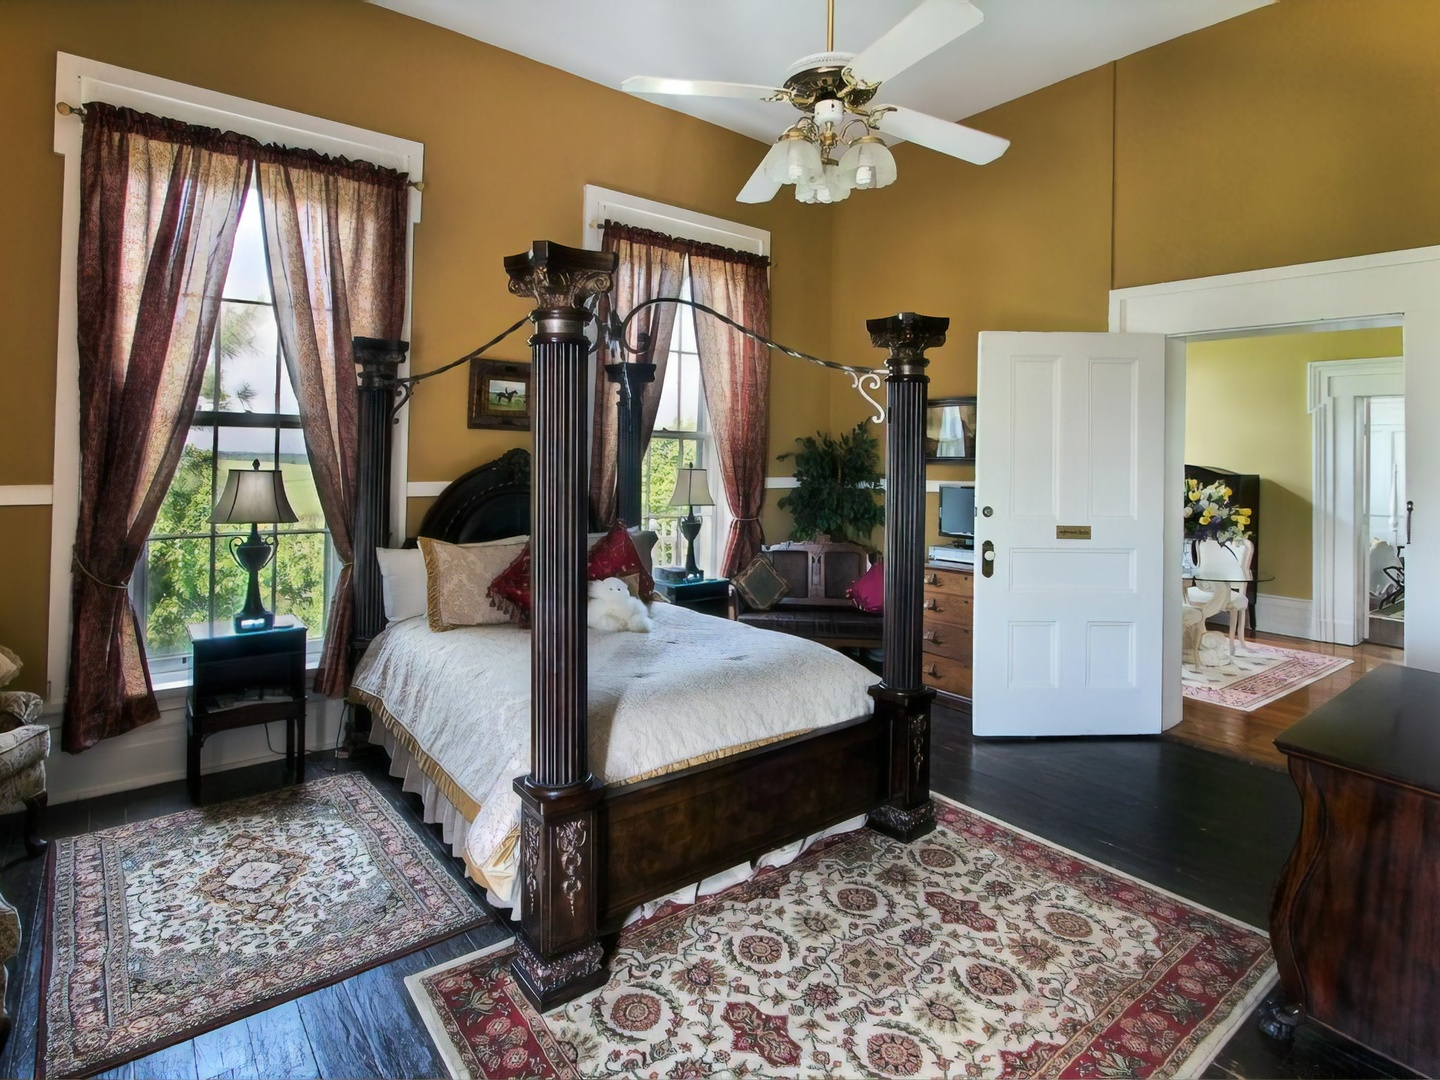 A bedroom with a large bed in a room at Historic Maple Hill Manor B&B.